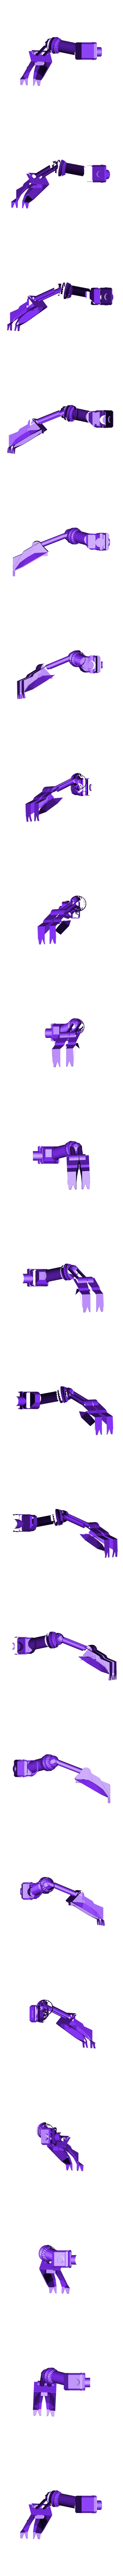 Left_Arm_Shovel.stl Download free STL file Modular Mech Construction Accessories • 3D printing template, mrhers2